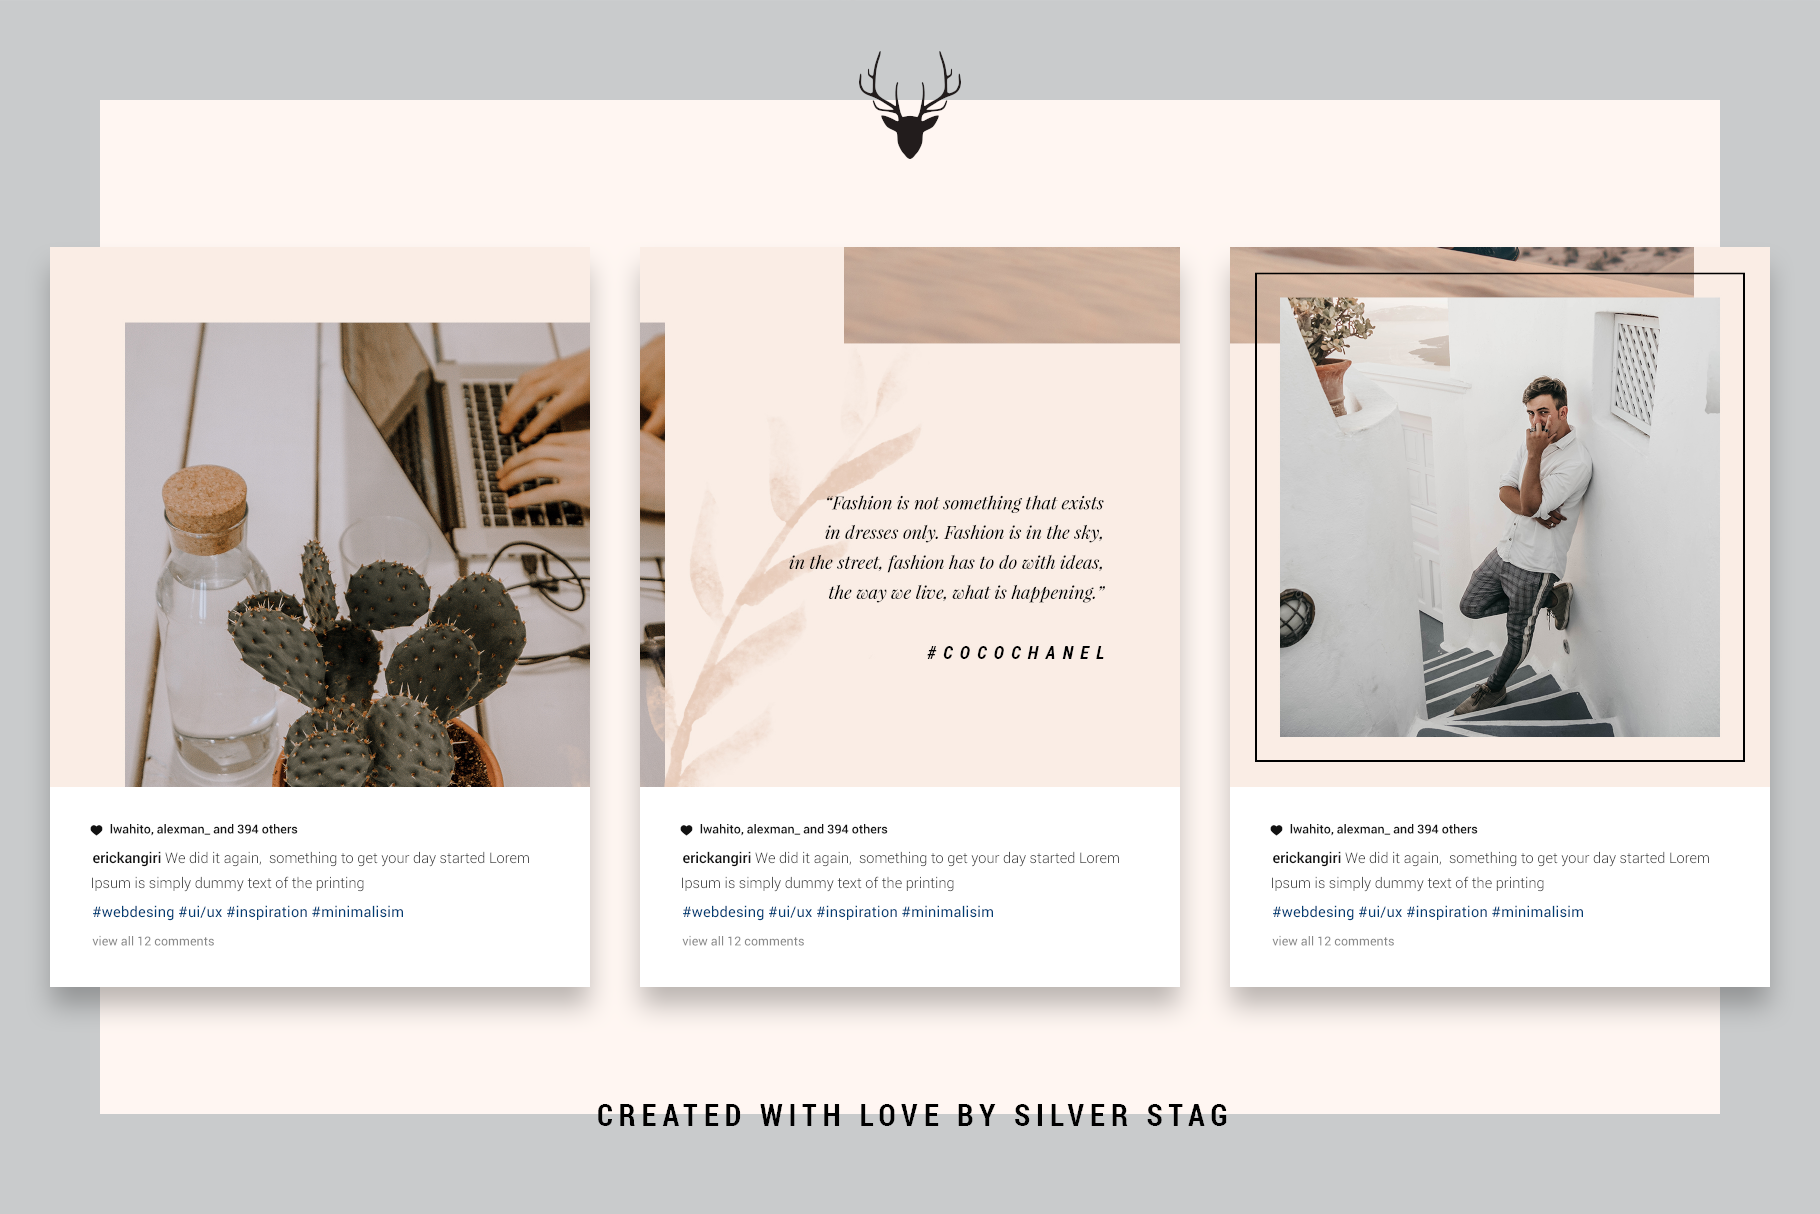 InstaGrid 5.0 - Creative & Modern Instagram Puzzle Template example image 8